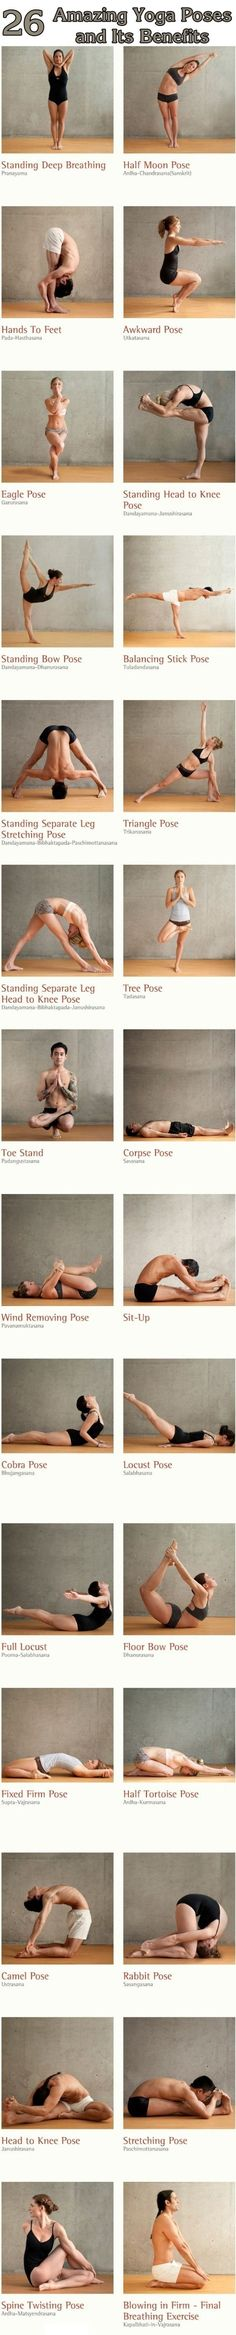 Amazing yoga poses and its benefits [ SkinnyFoxDetox.com ] #yoga #skinny #health